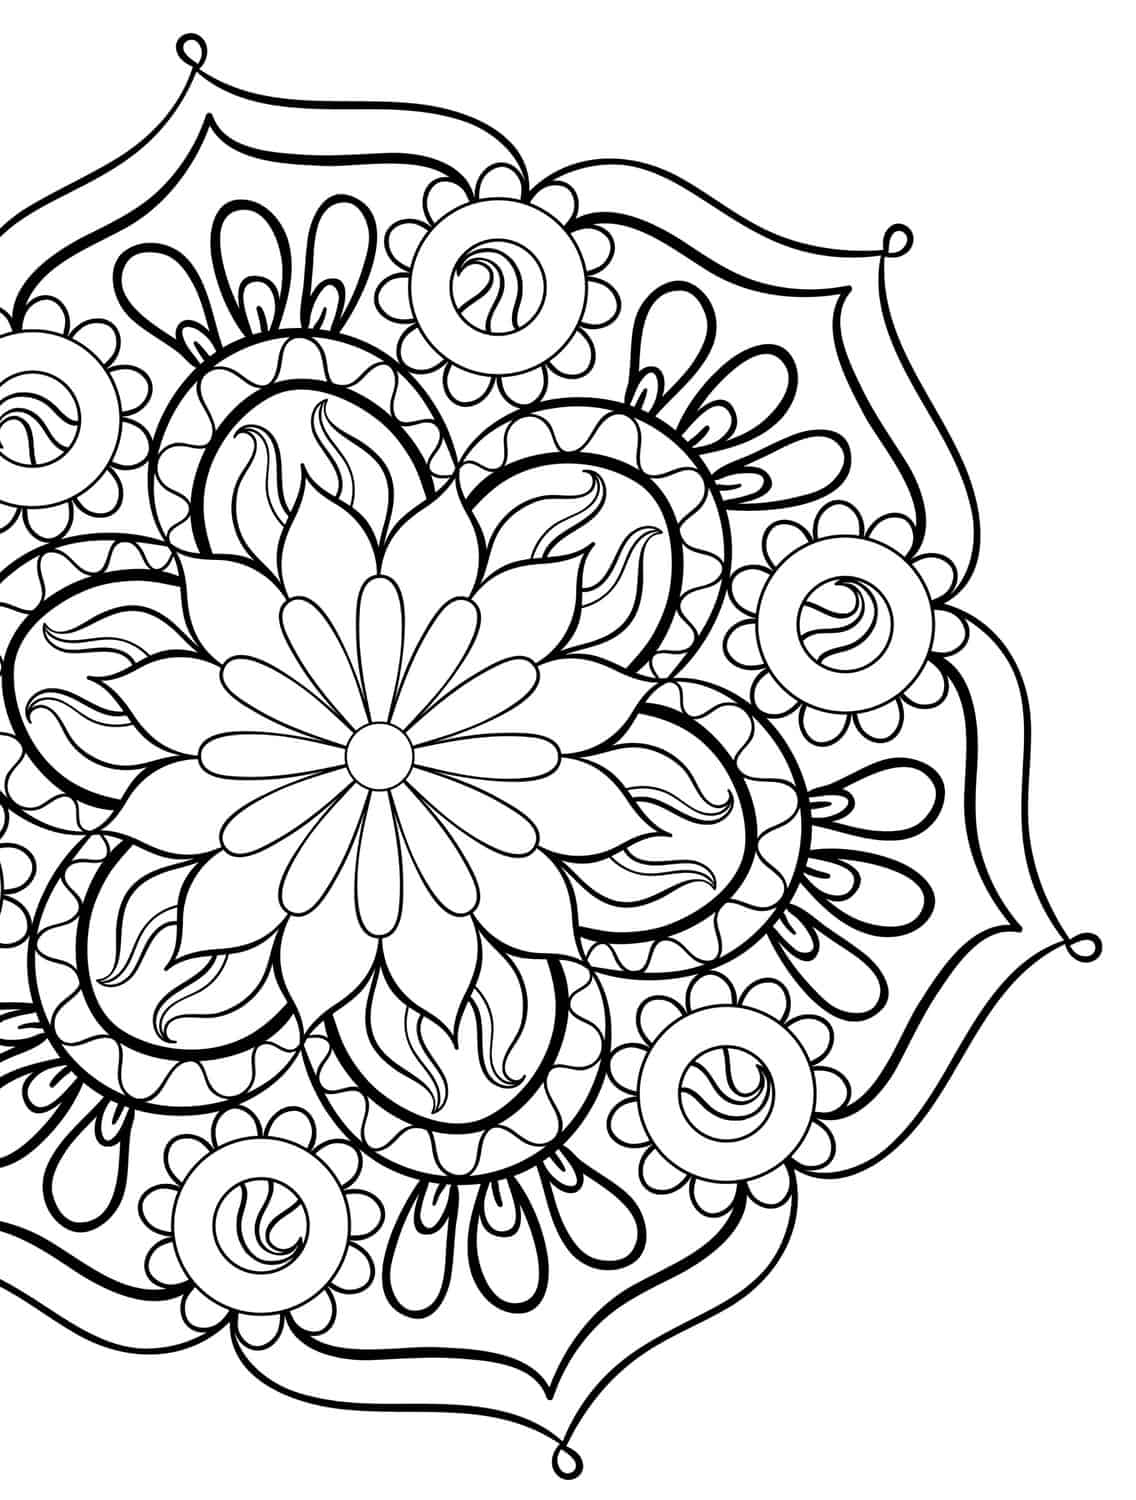 20 gorgeous free printable adult coloring pages page 2 for Adult coloring pages mandala